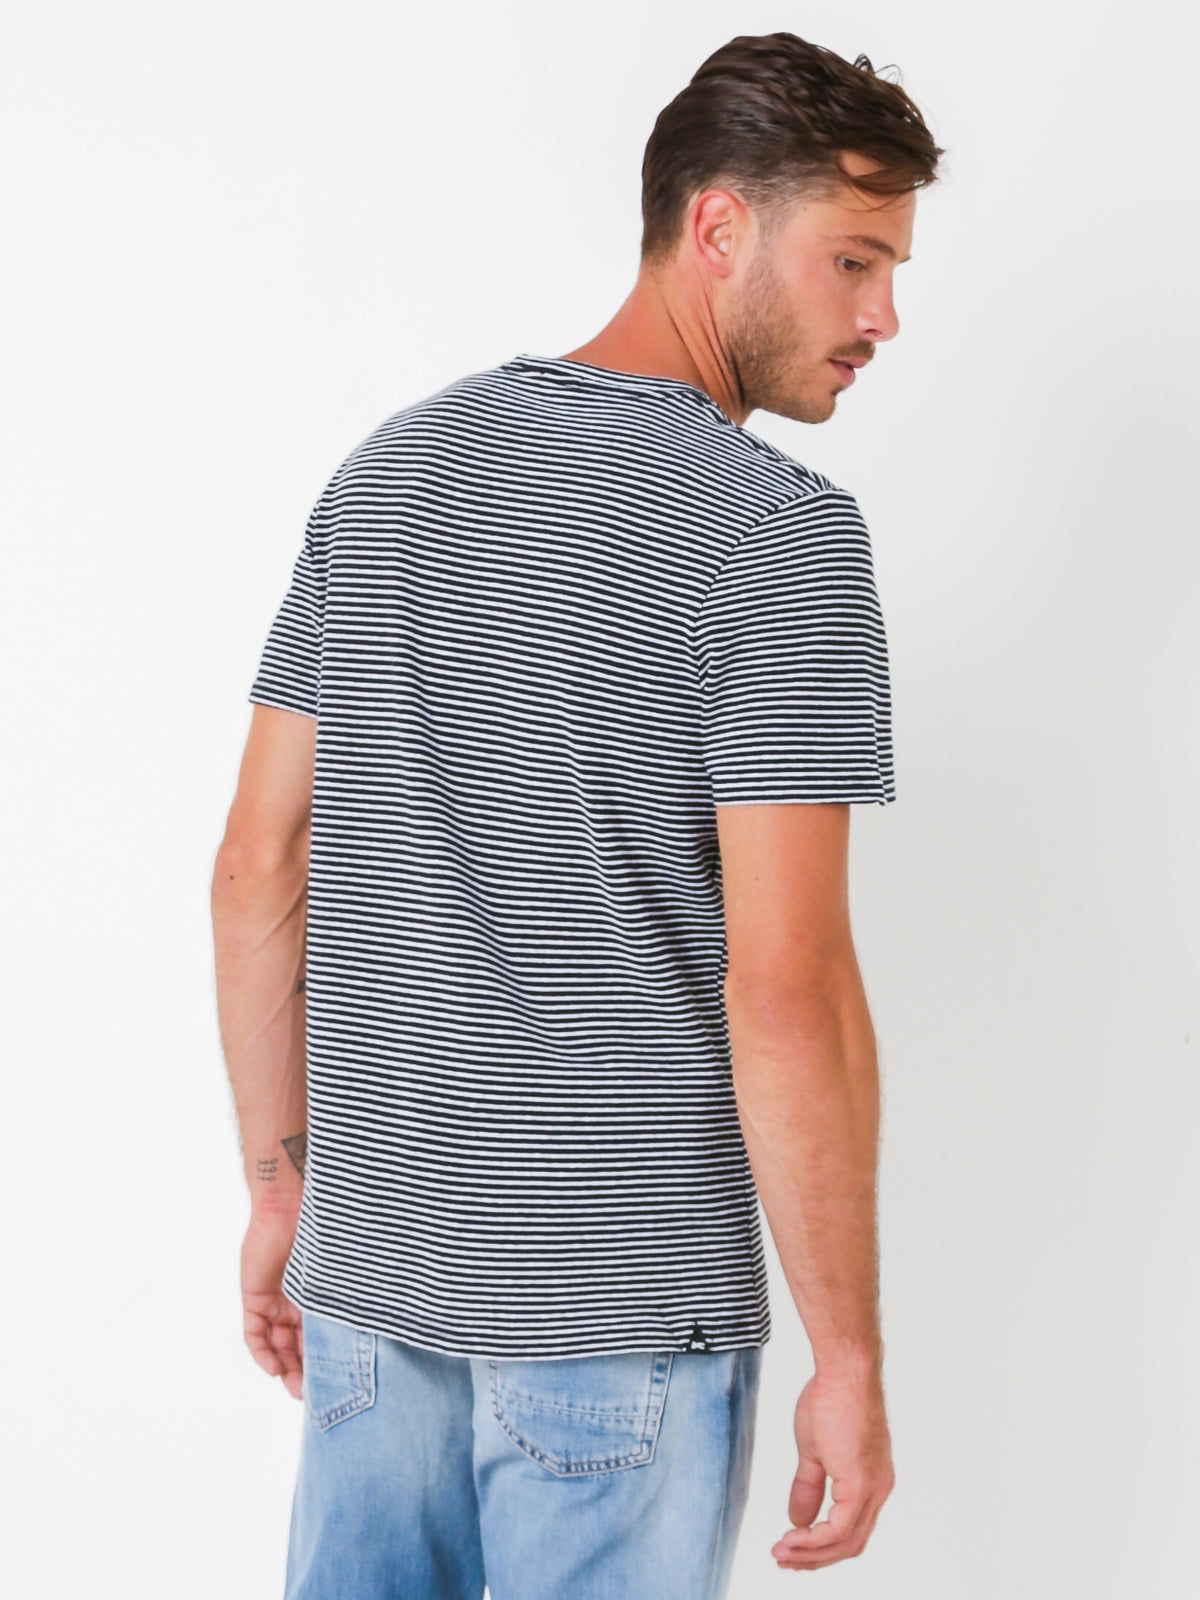 Denham Printed Stripe T-Shirt in Black